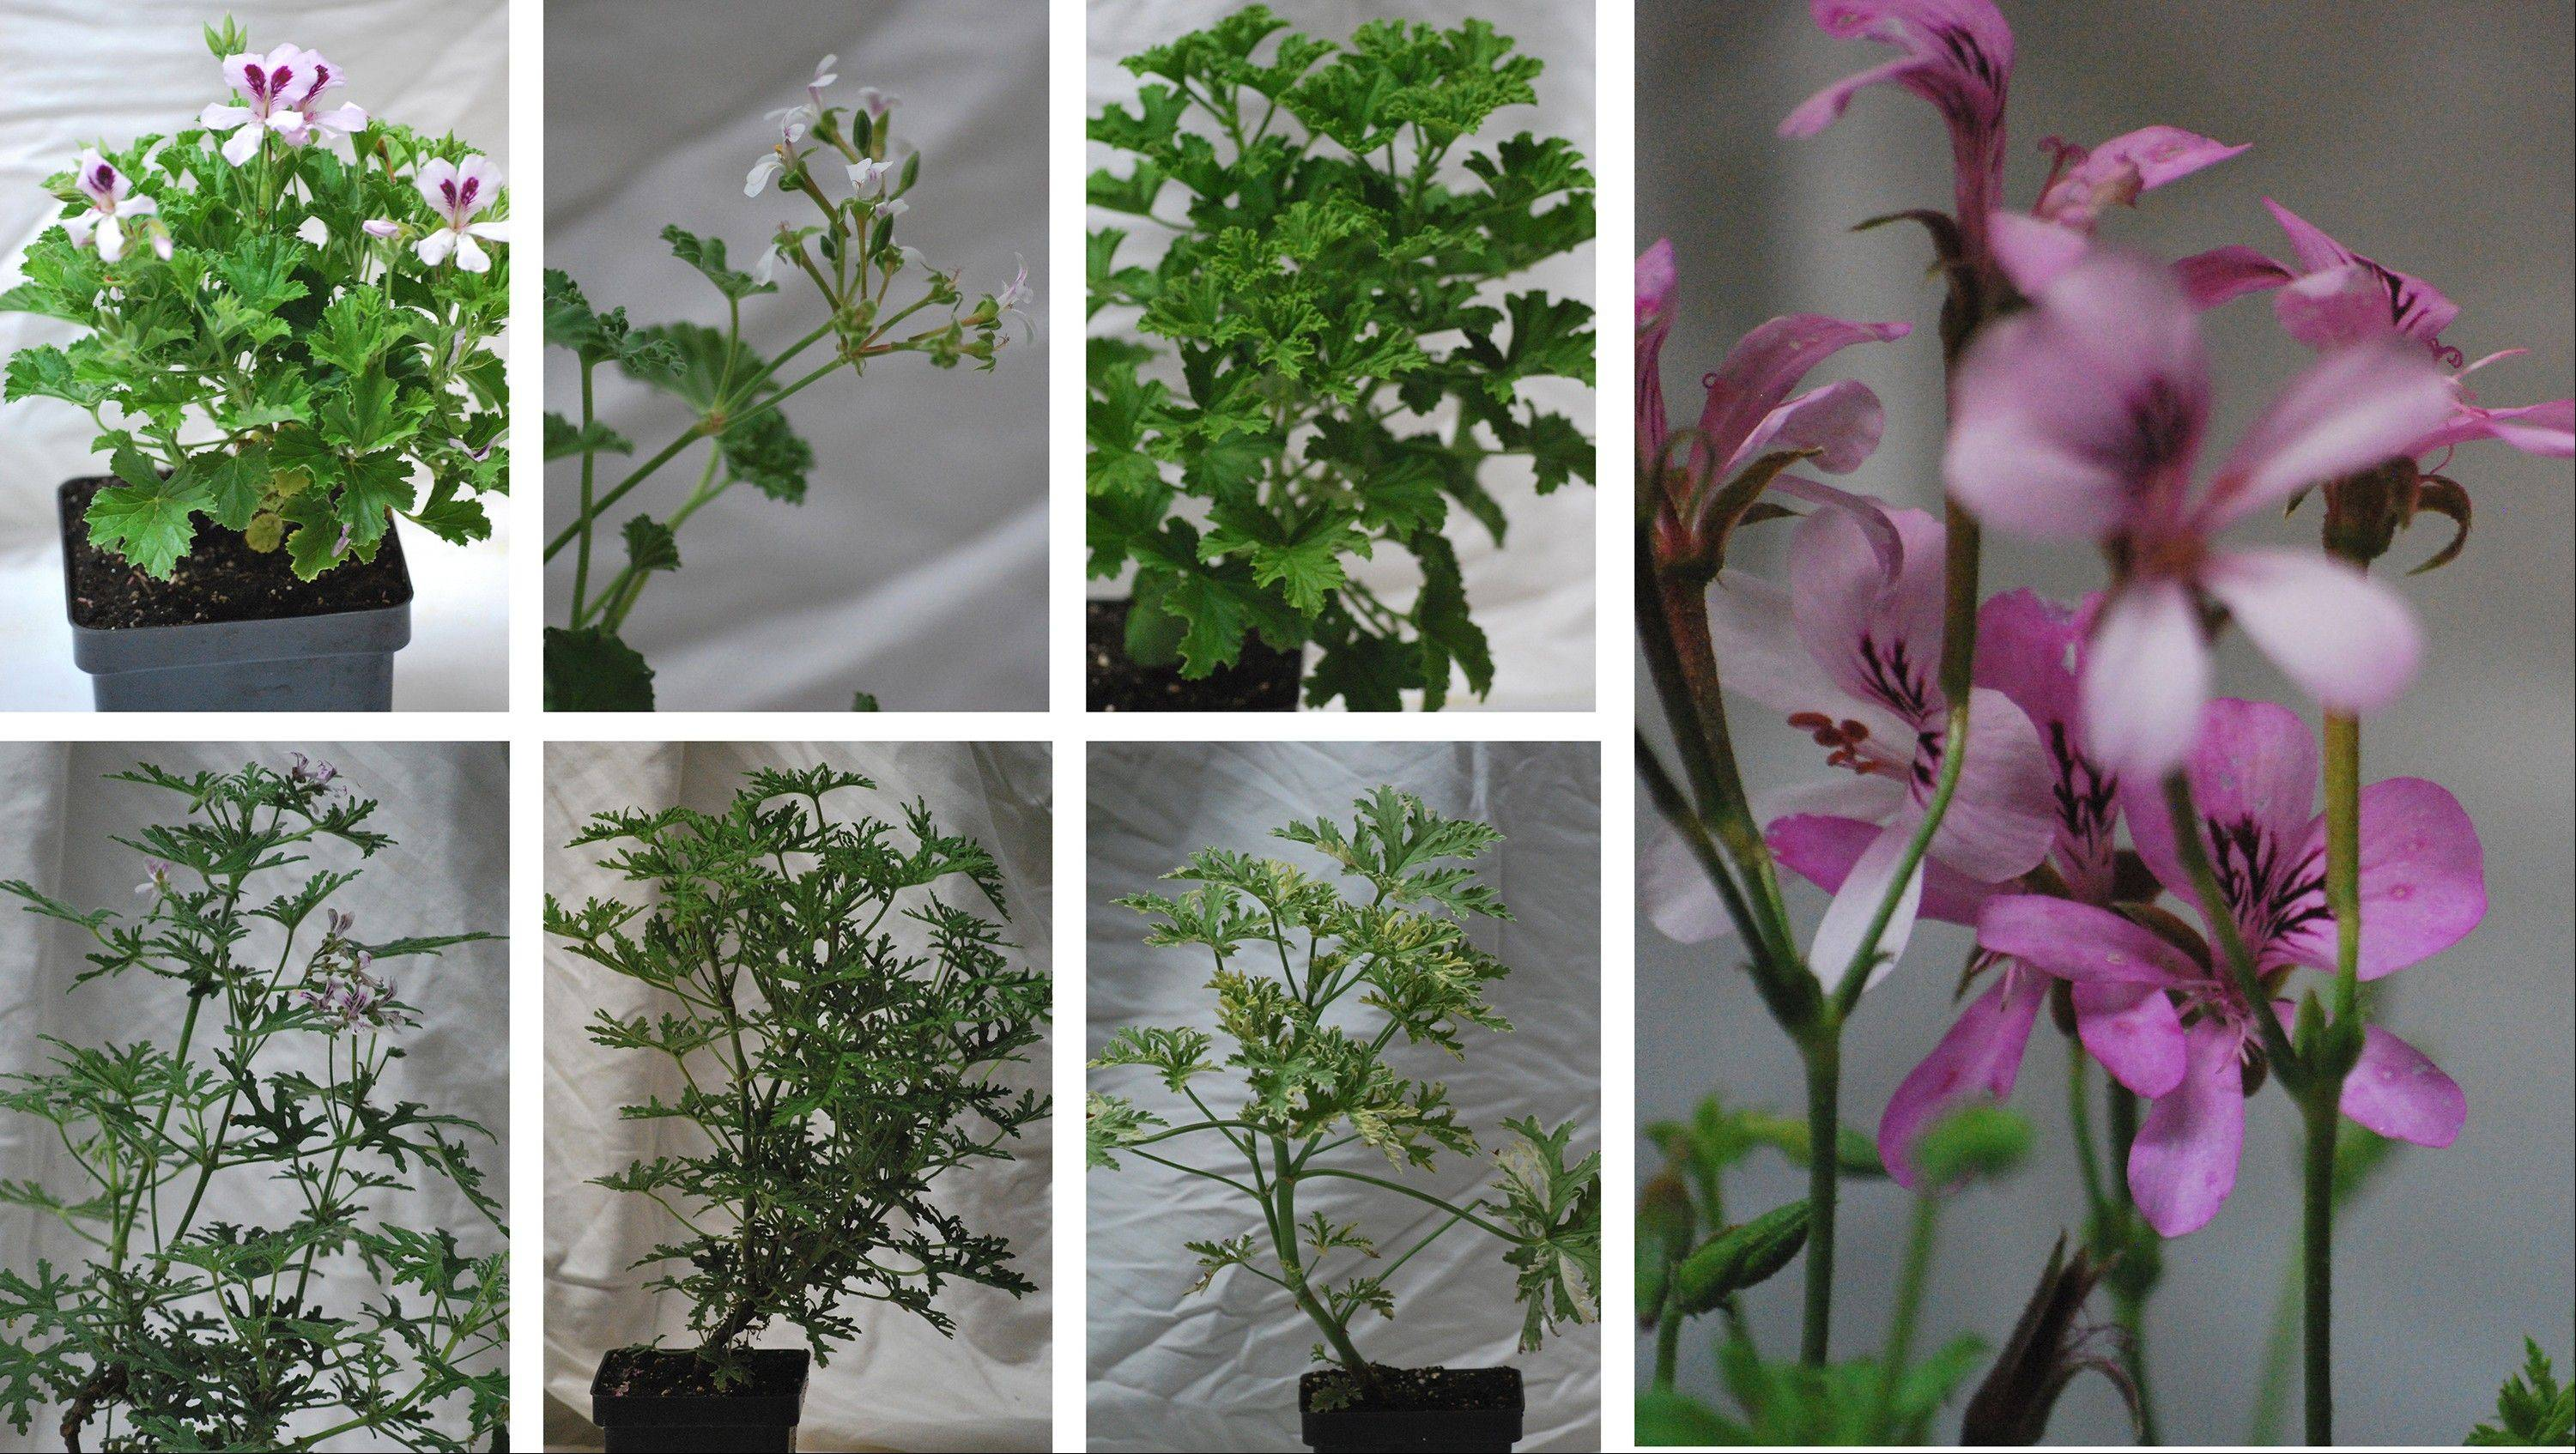 Scented geraniums are considered herbs and are less showy than ivy-leafed geraniums, with blooms that are small to minute. From left to right, top: Orange, Apple, Frensham Lemon. From left to right, bottom: Peppermint Rose, Skeleton Rose, Grey Lady Plymouth. Far right: Strawberry.